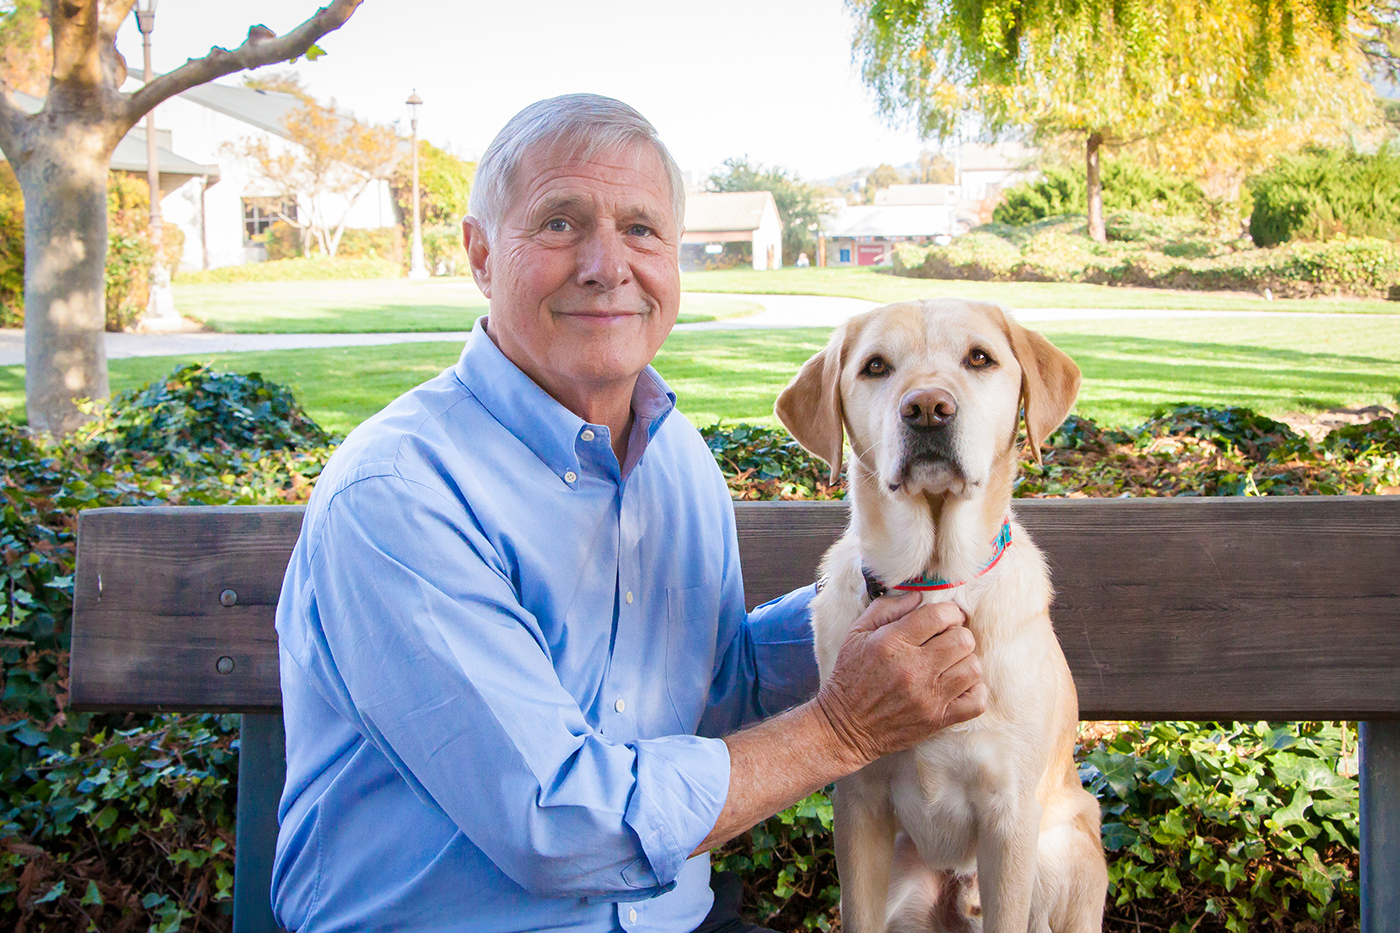 Greg Rice sits on a wooden bench next to a yellow Lab. Green grass and trees are pictured in the background.